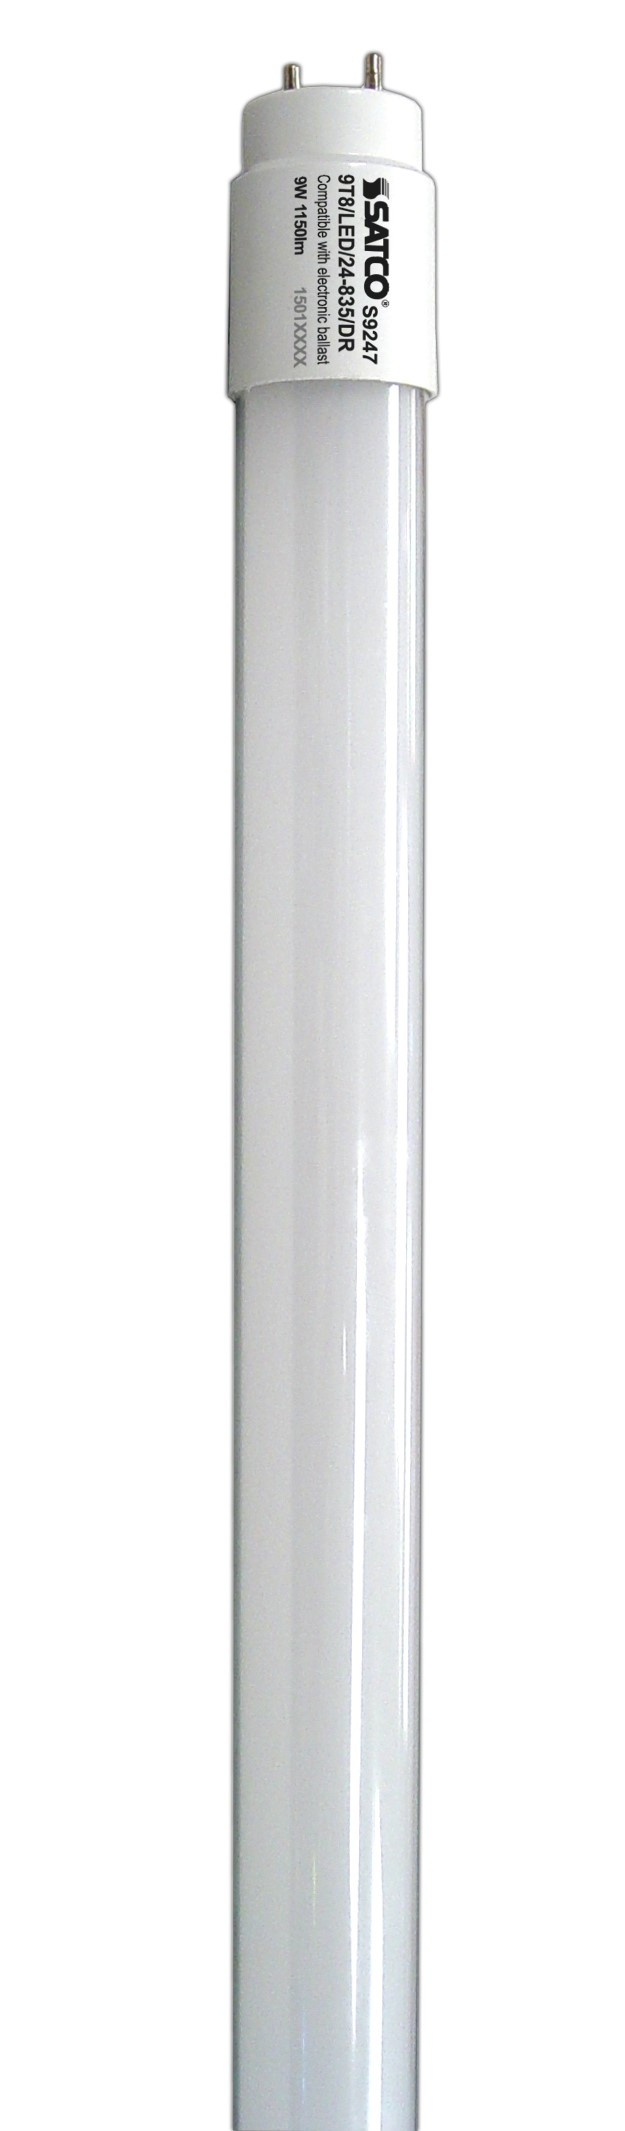 Satco,S9247,9T8/LED/24-835/DR